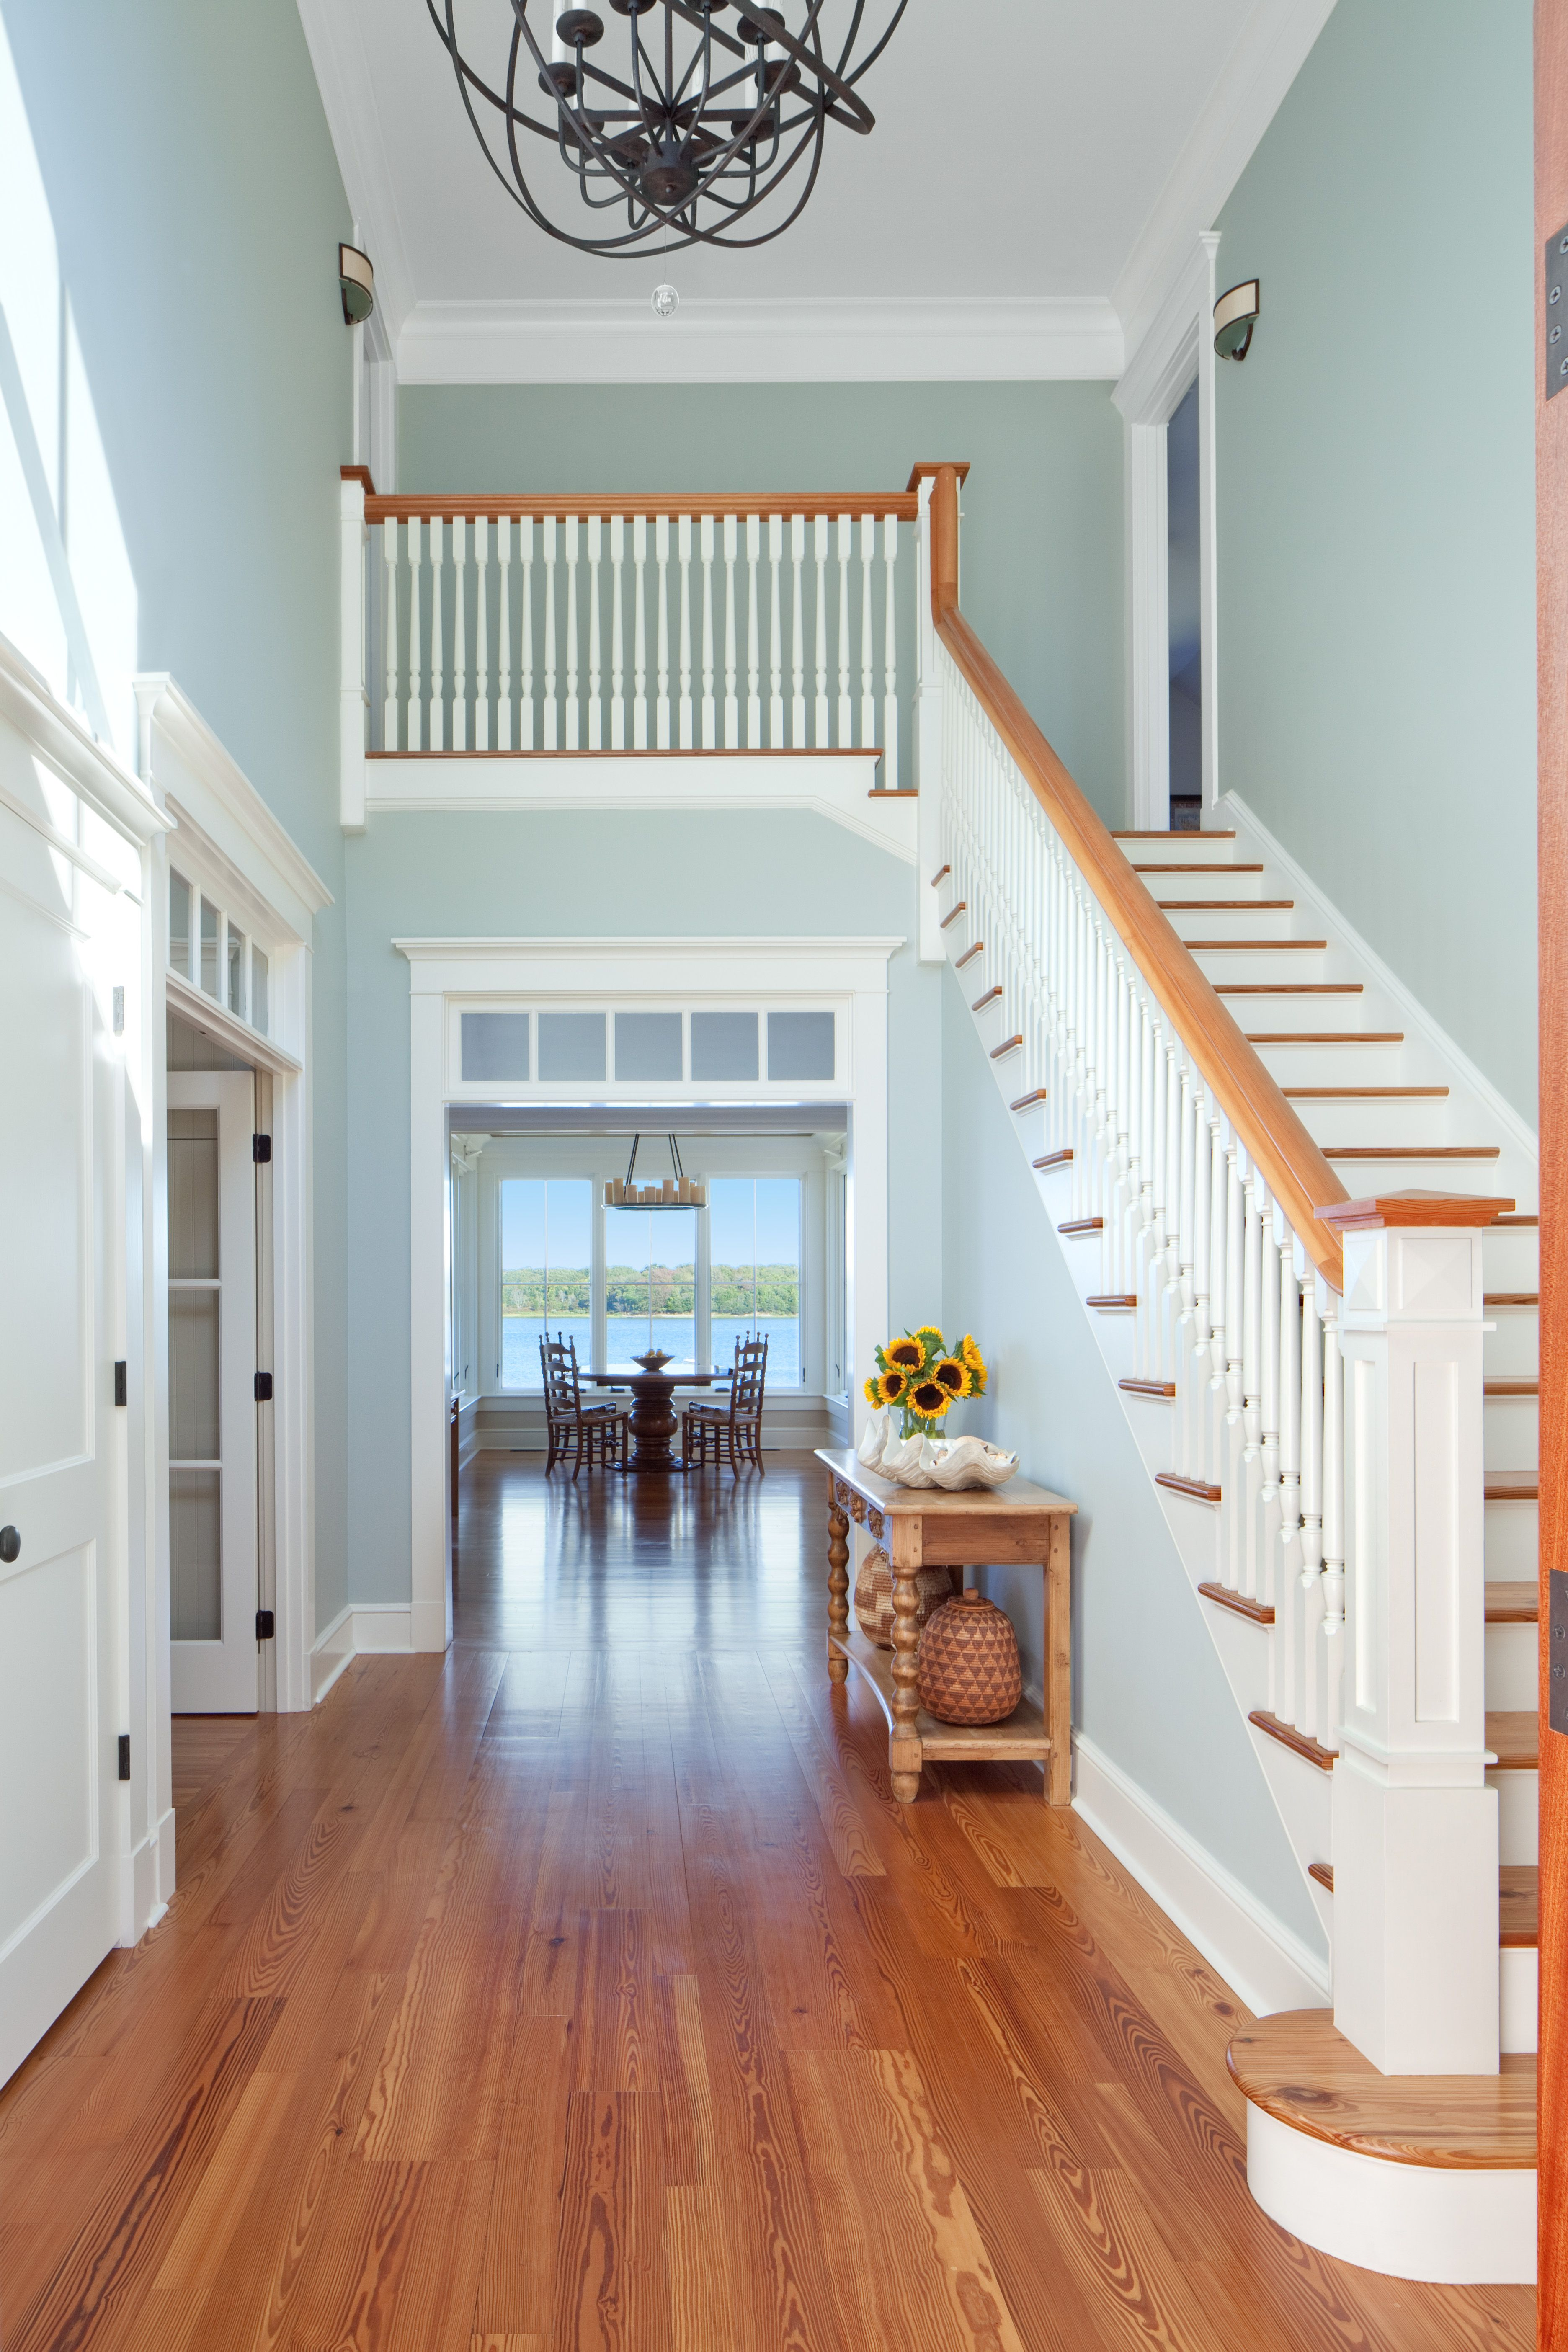 stair hall | Drift Road | Pinterest | Hall, Interiors and Interior ...